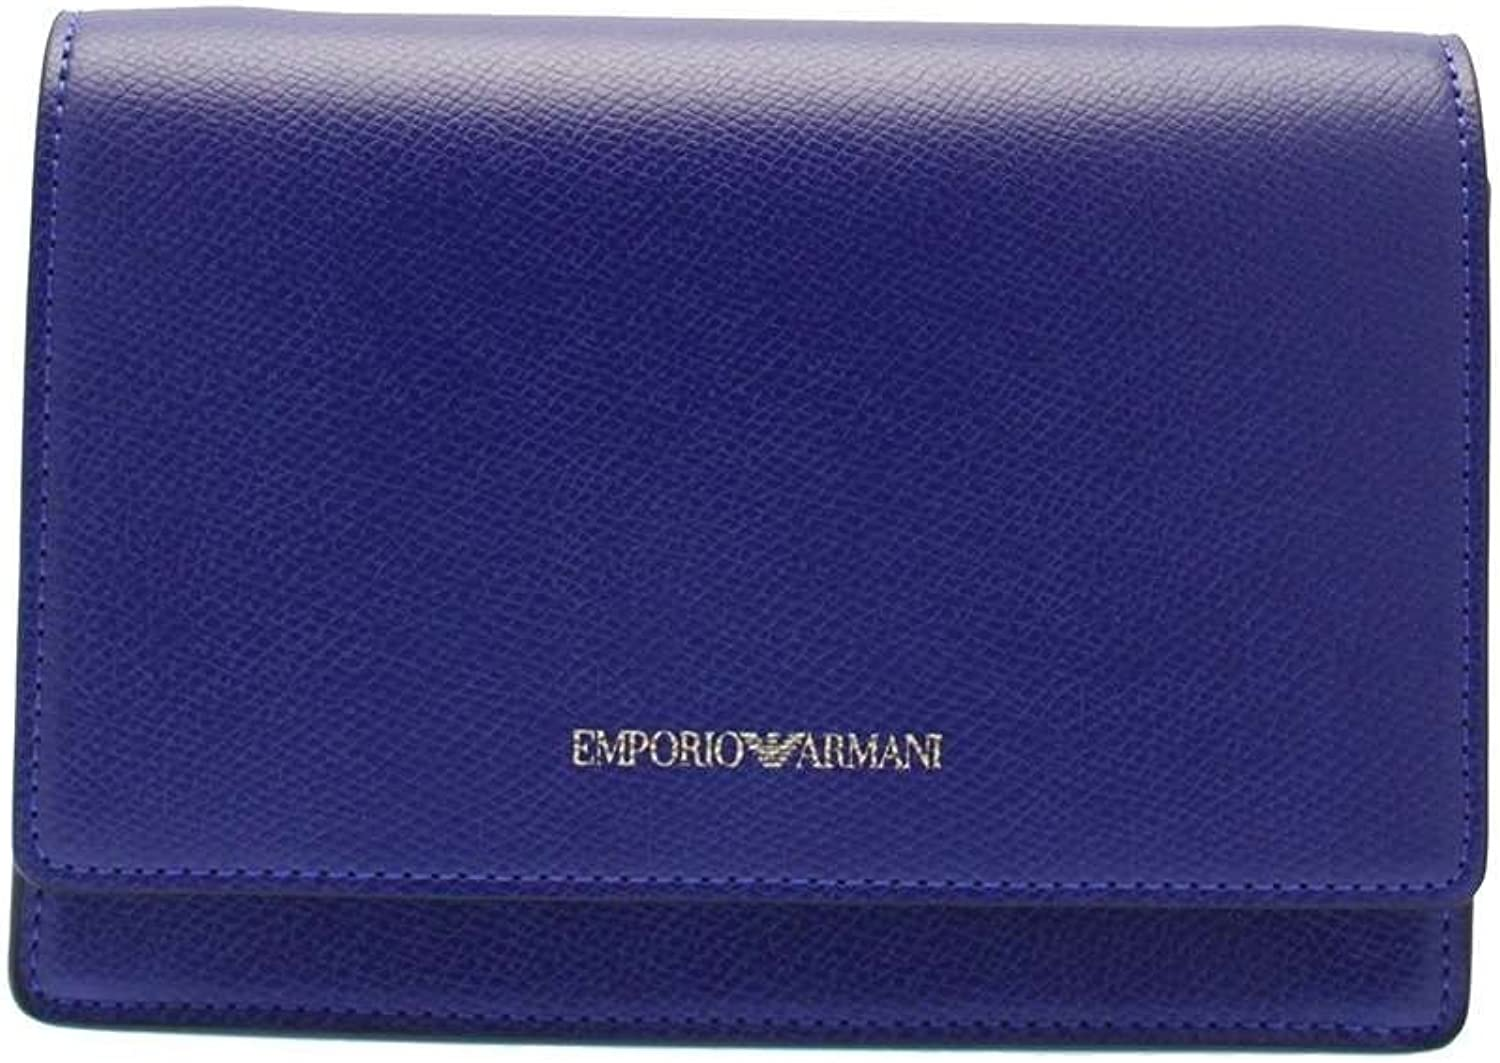 Emporio Armani Bag ss2018 Female blueette  Y3B086YH15A81606